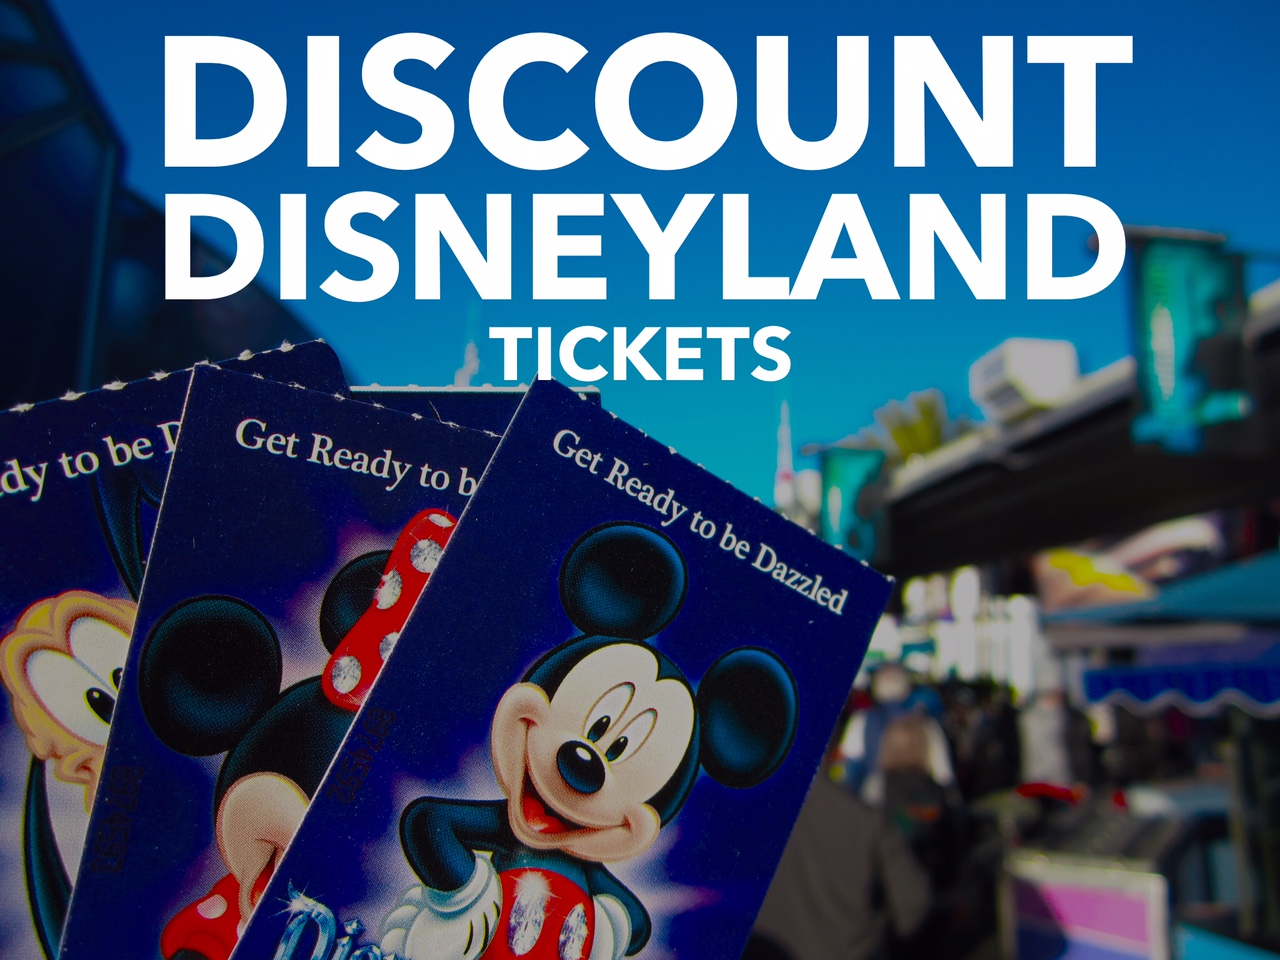 One adult ticket to disneyland for one day